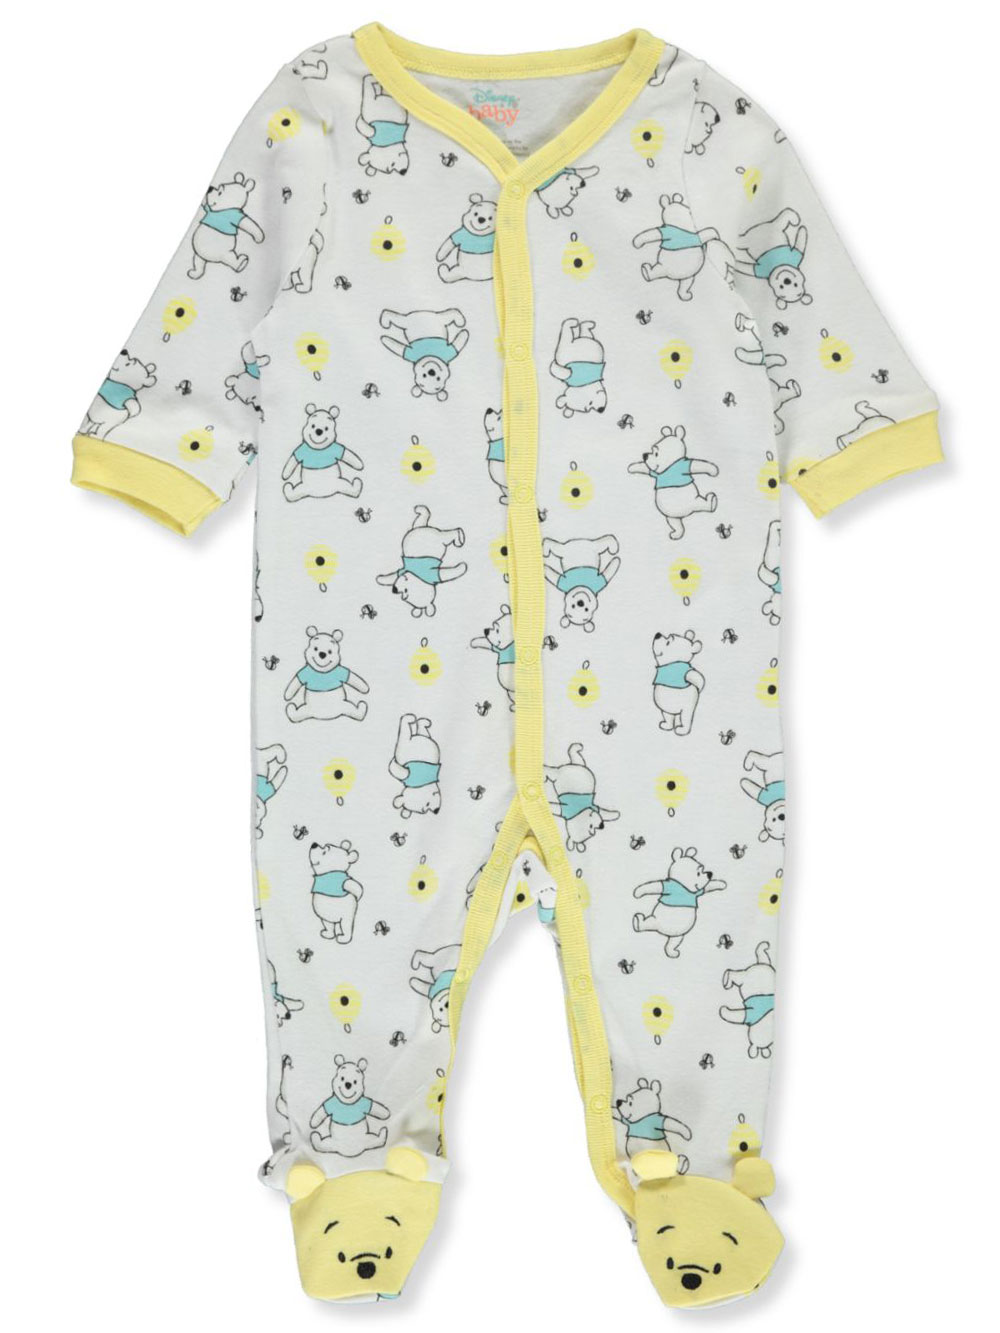 Disney Winnie The Pooh Coveralls